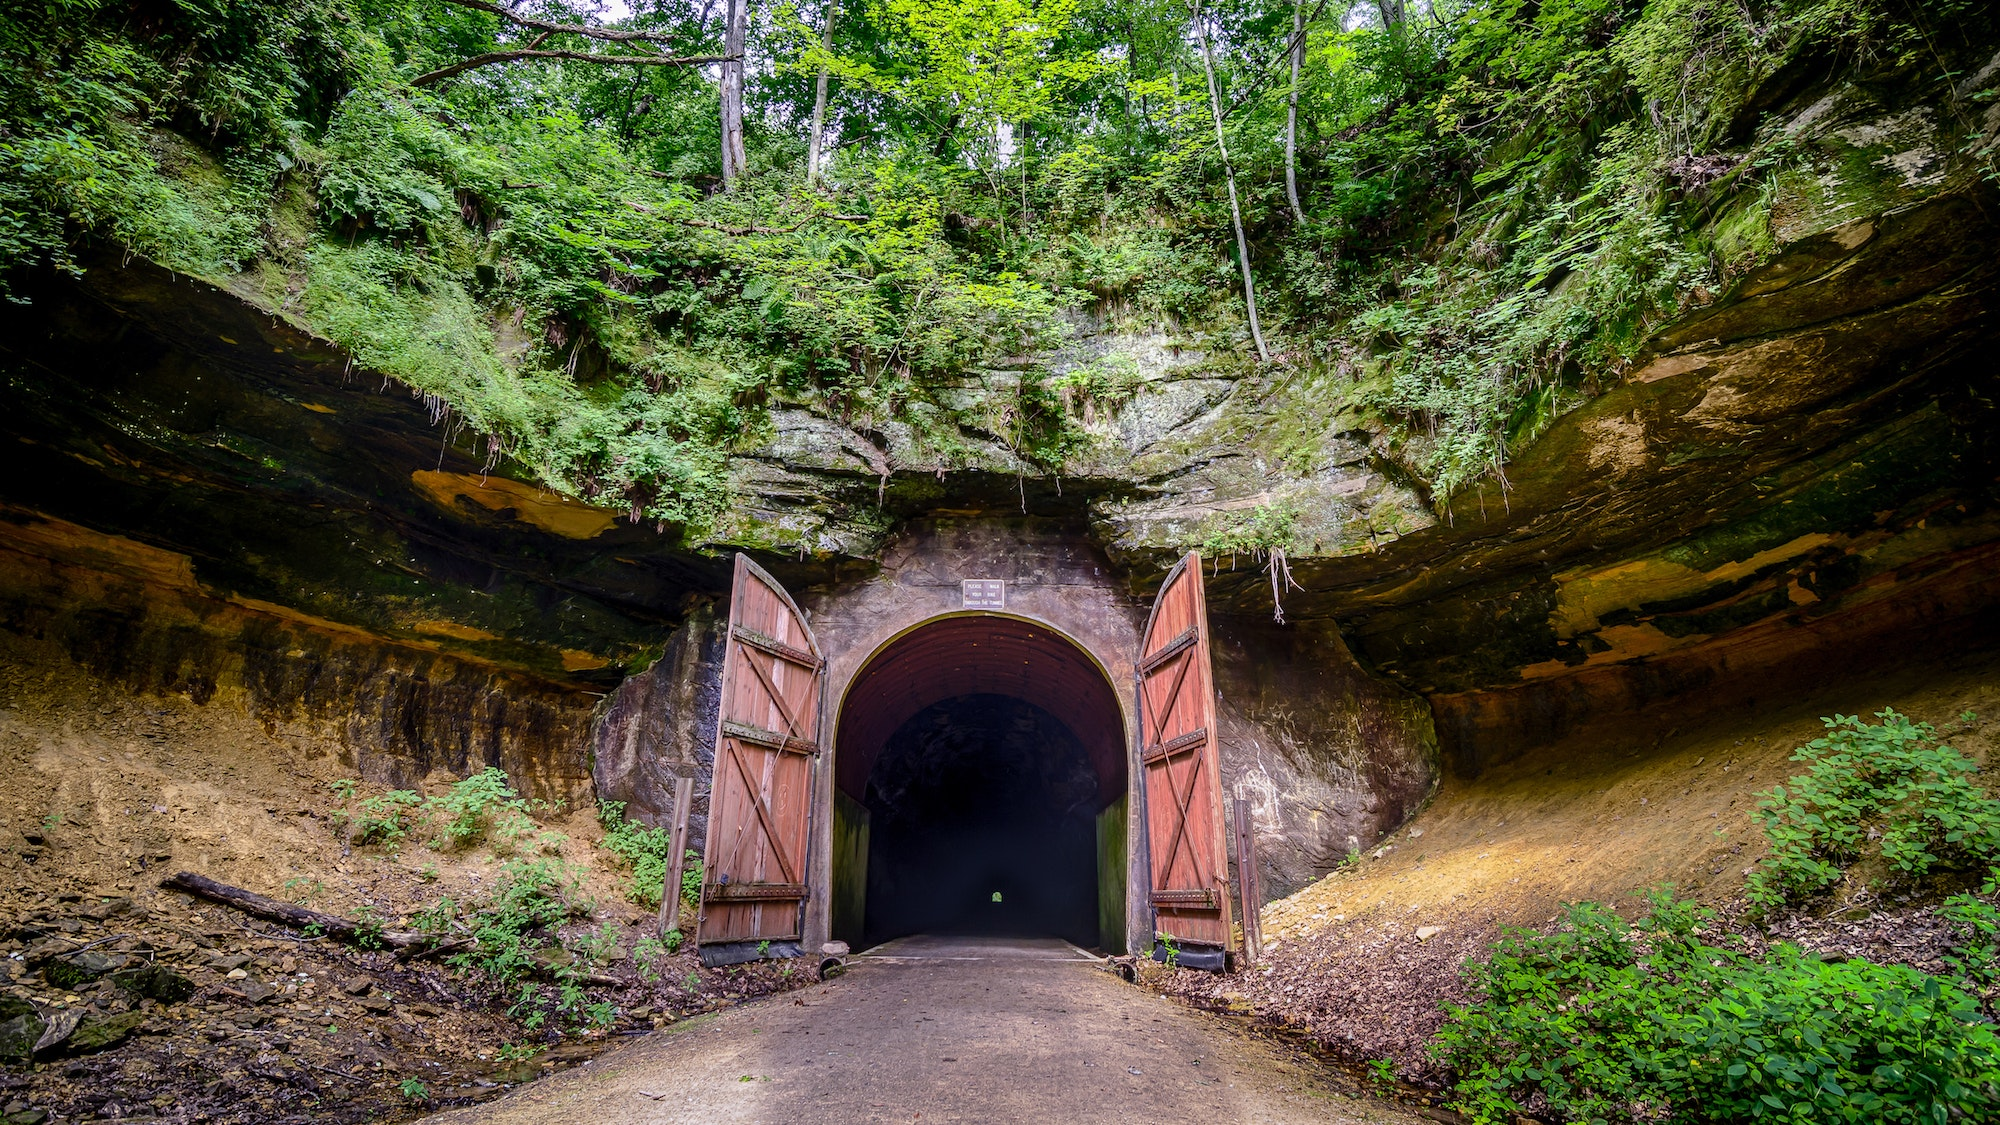 One of the popular tunnels along the Elroy-Sparta State Trail